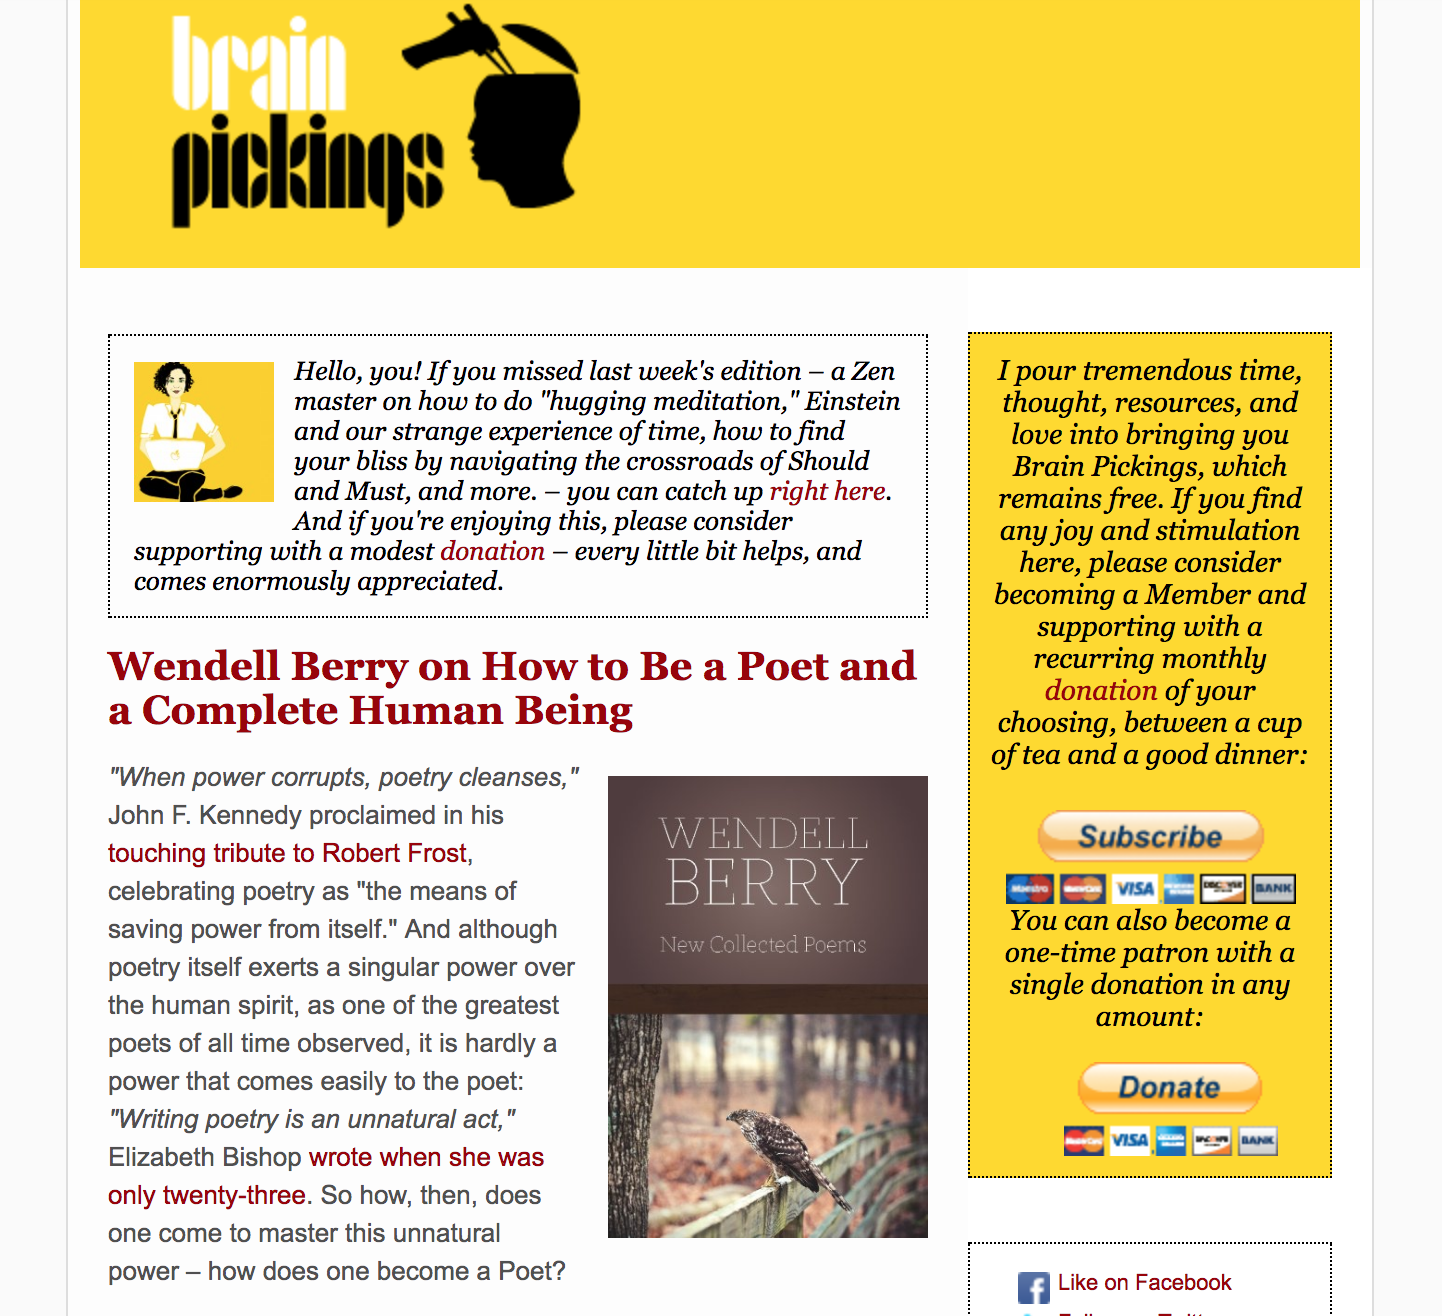 Brain pickings newsletter share curated content